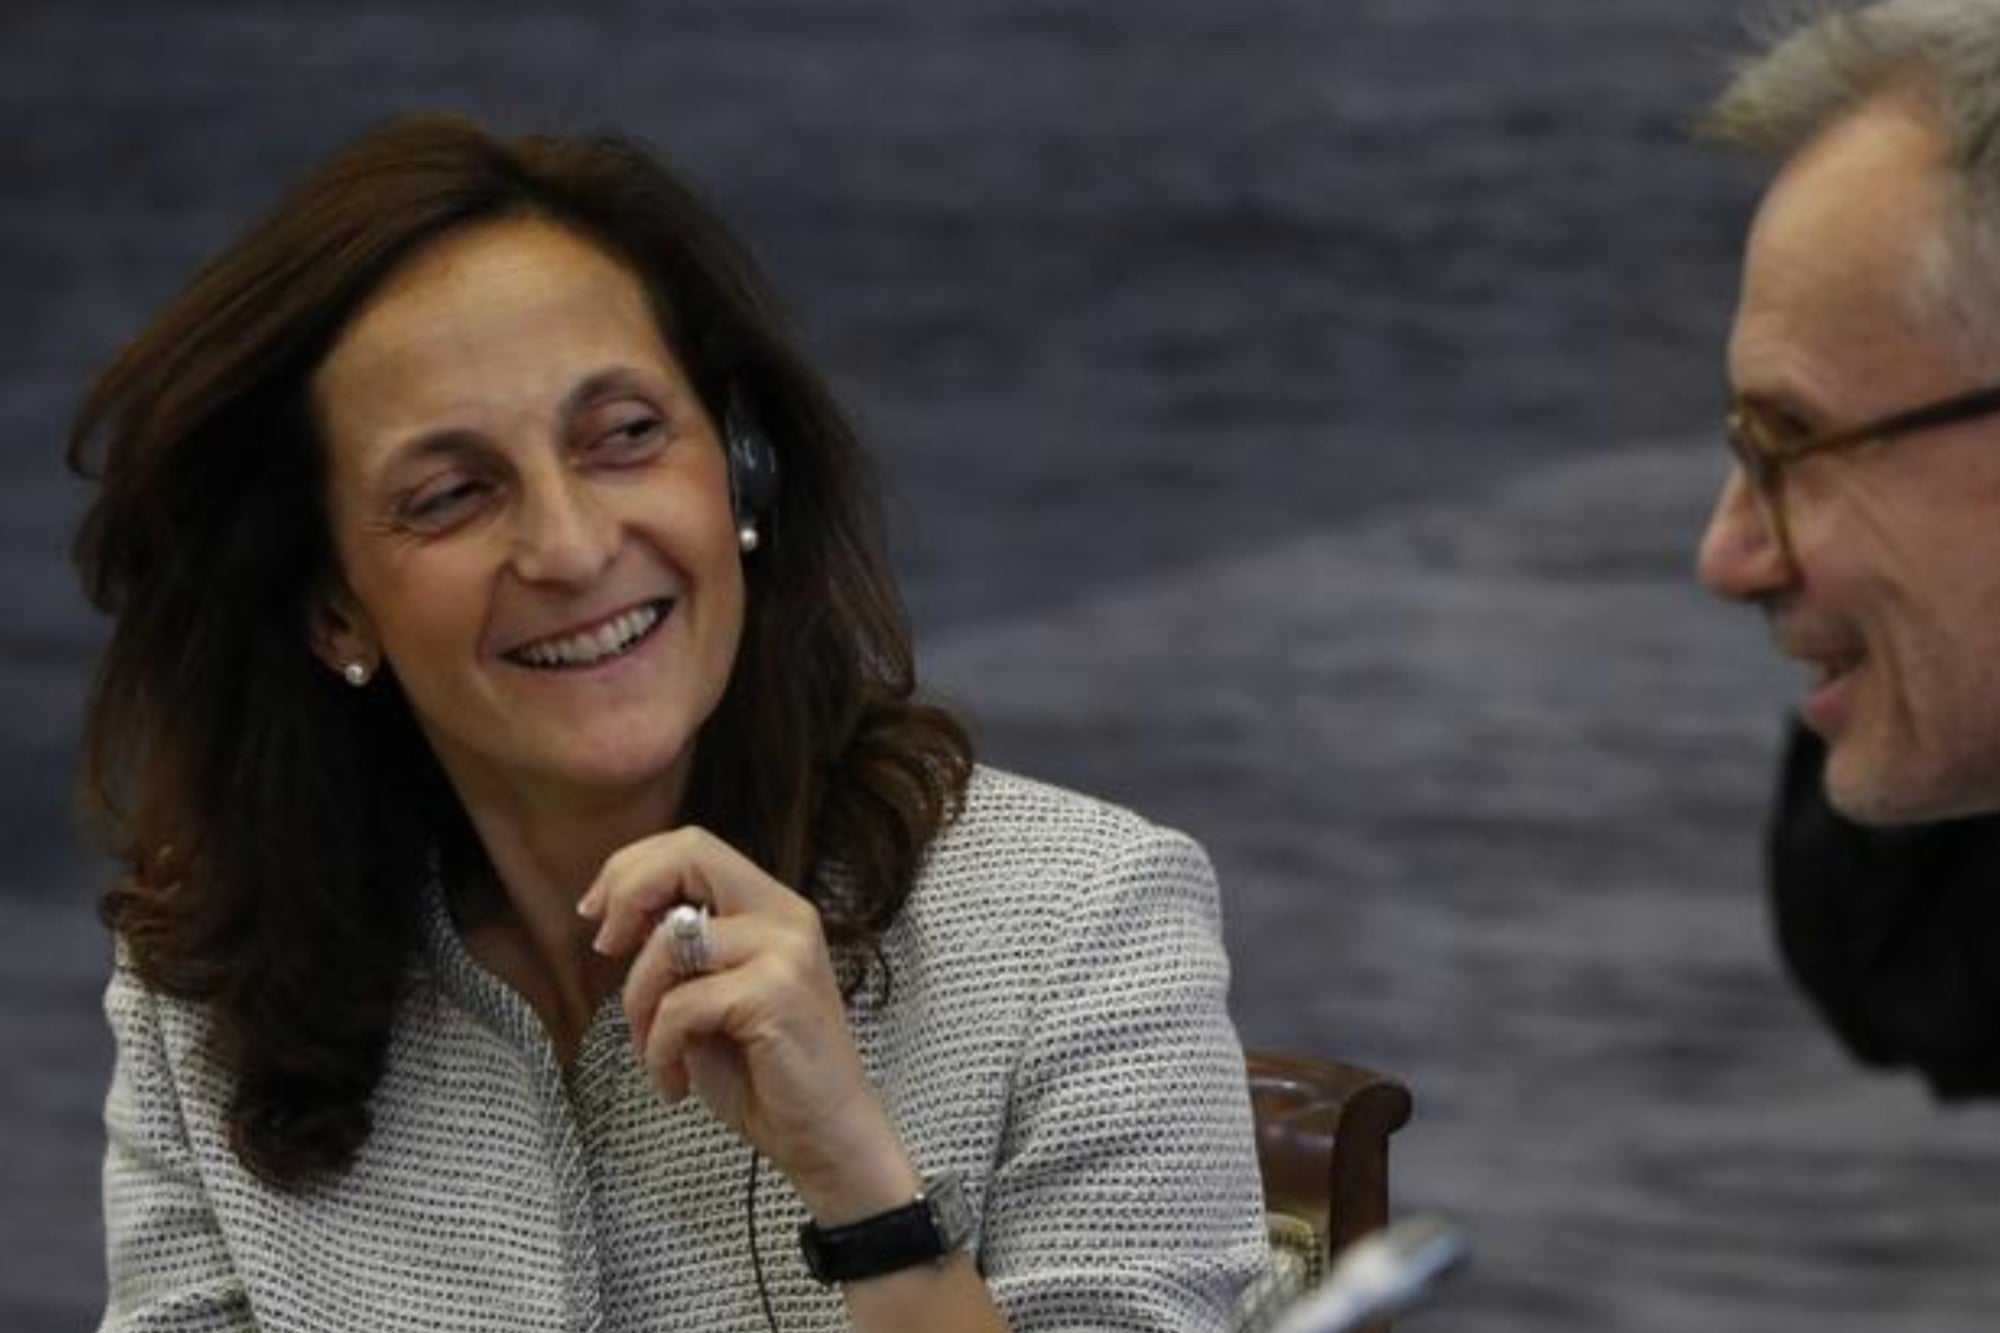 Alessandra Galloni to be the first female editor-in-chief at Reuters in 170 years